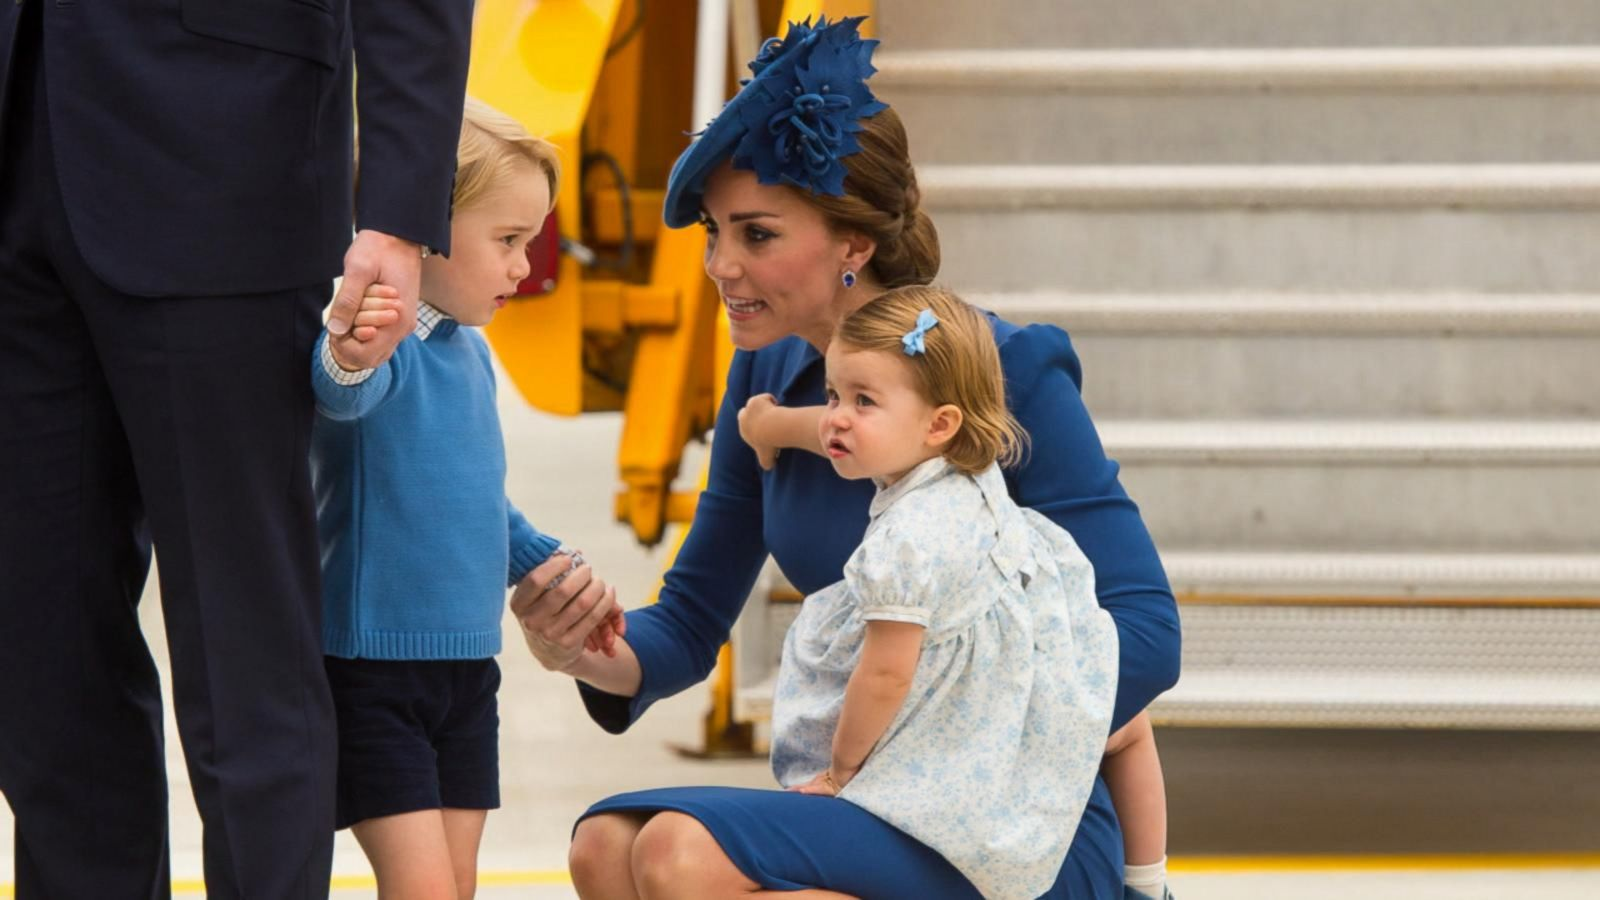 VIDEO: Latest Highlights From Kate and William's Canada Tour